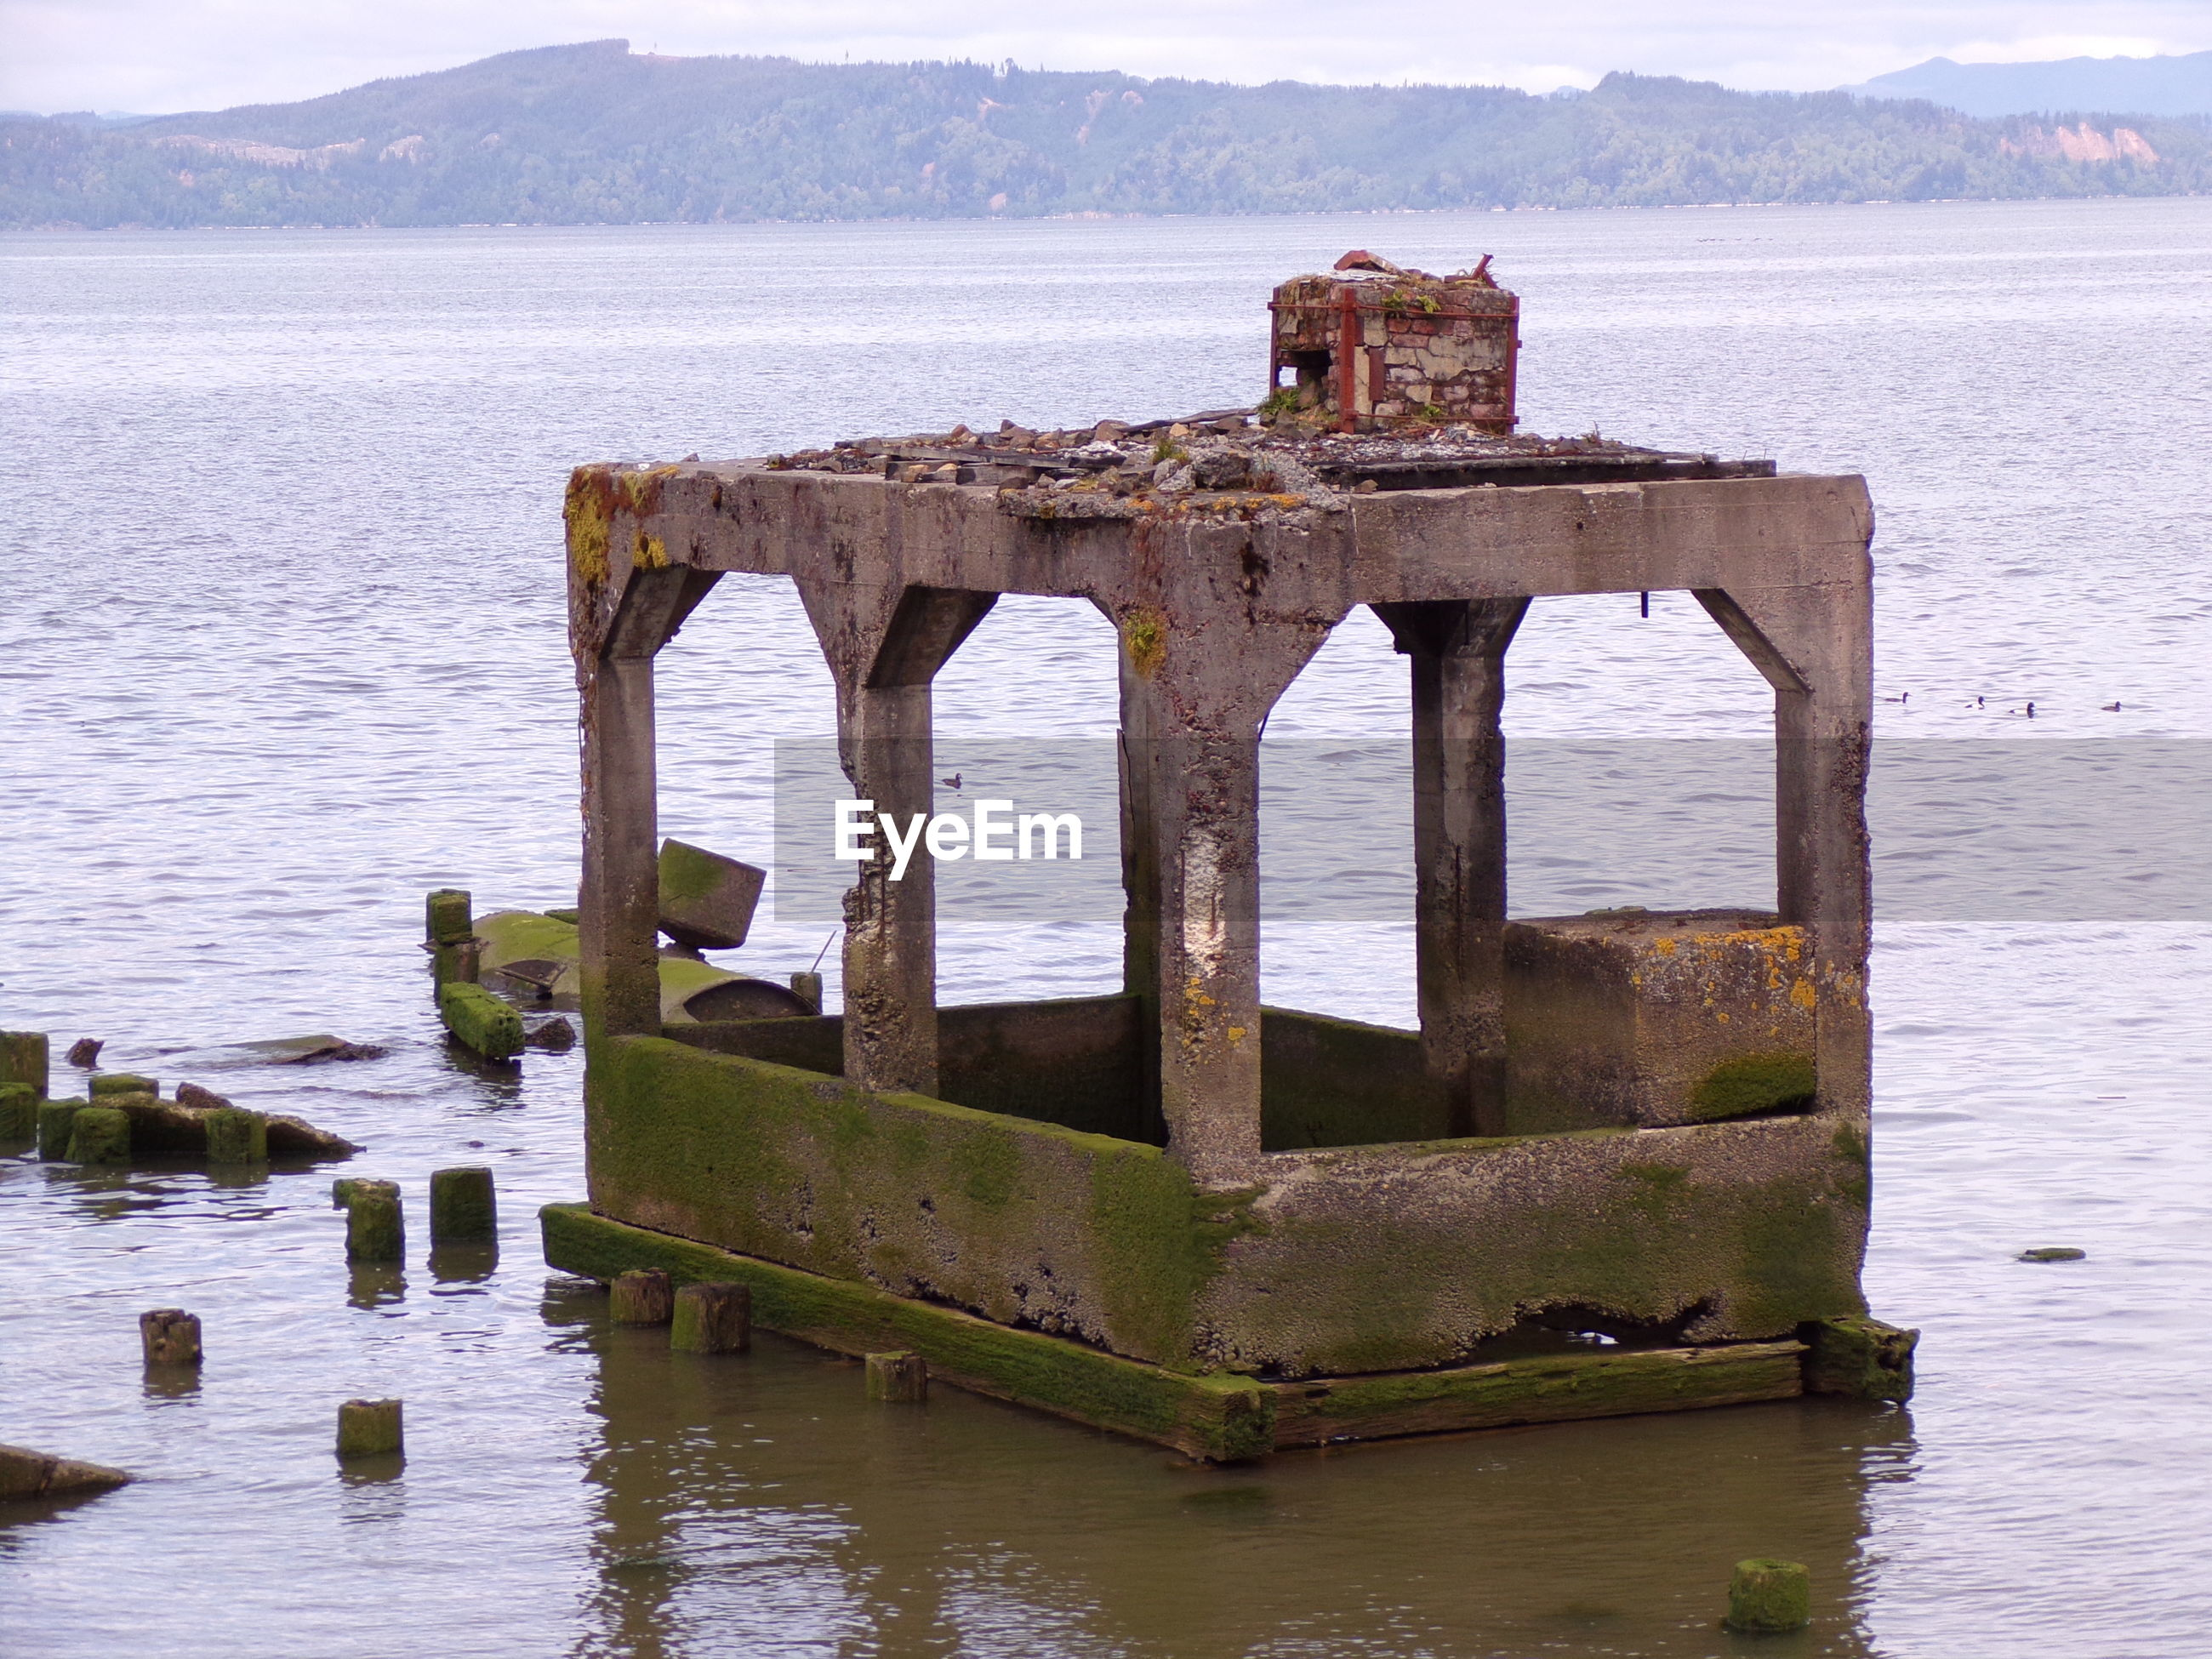 Old rubble left over from years past on the columbia river